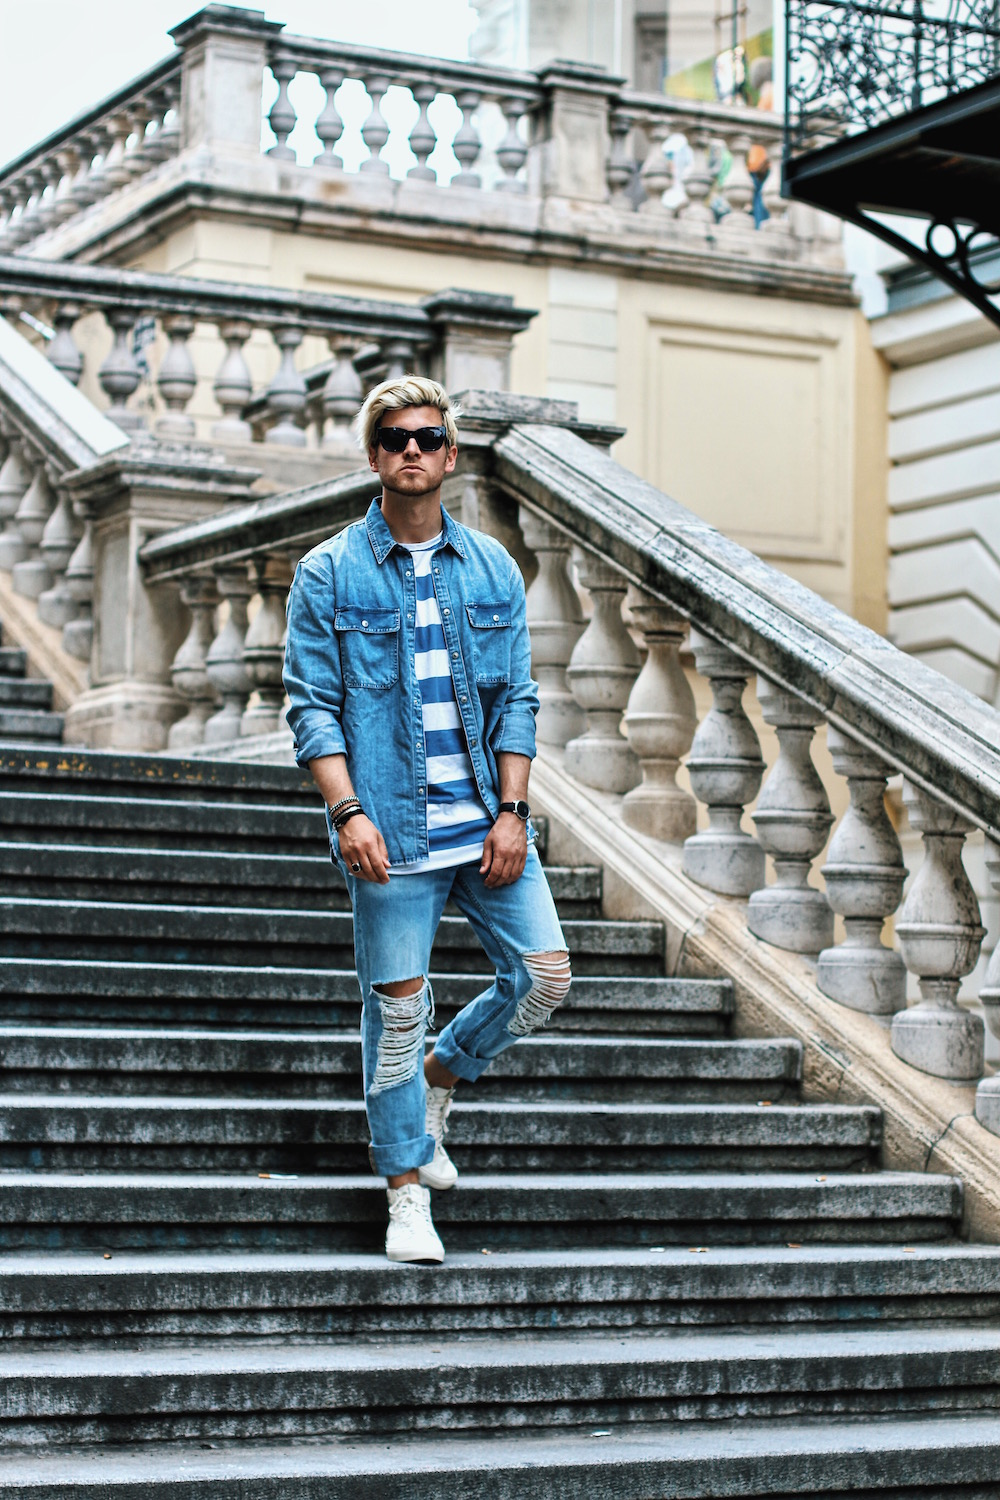 Outfit H&M Denim on Denim Look Ripped Jeans Denim Shirt Striped Tee by Meanwhile in Awesometown Austrian Mensfashion and Lifestyleblogger 8